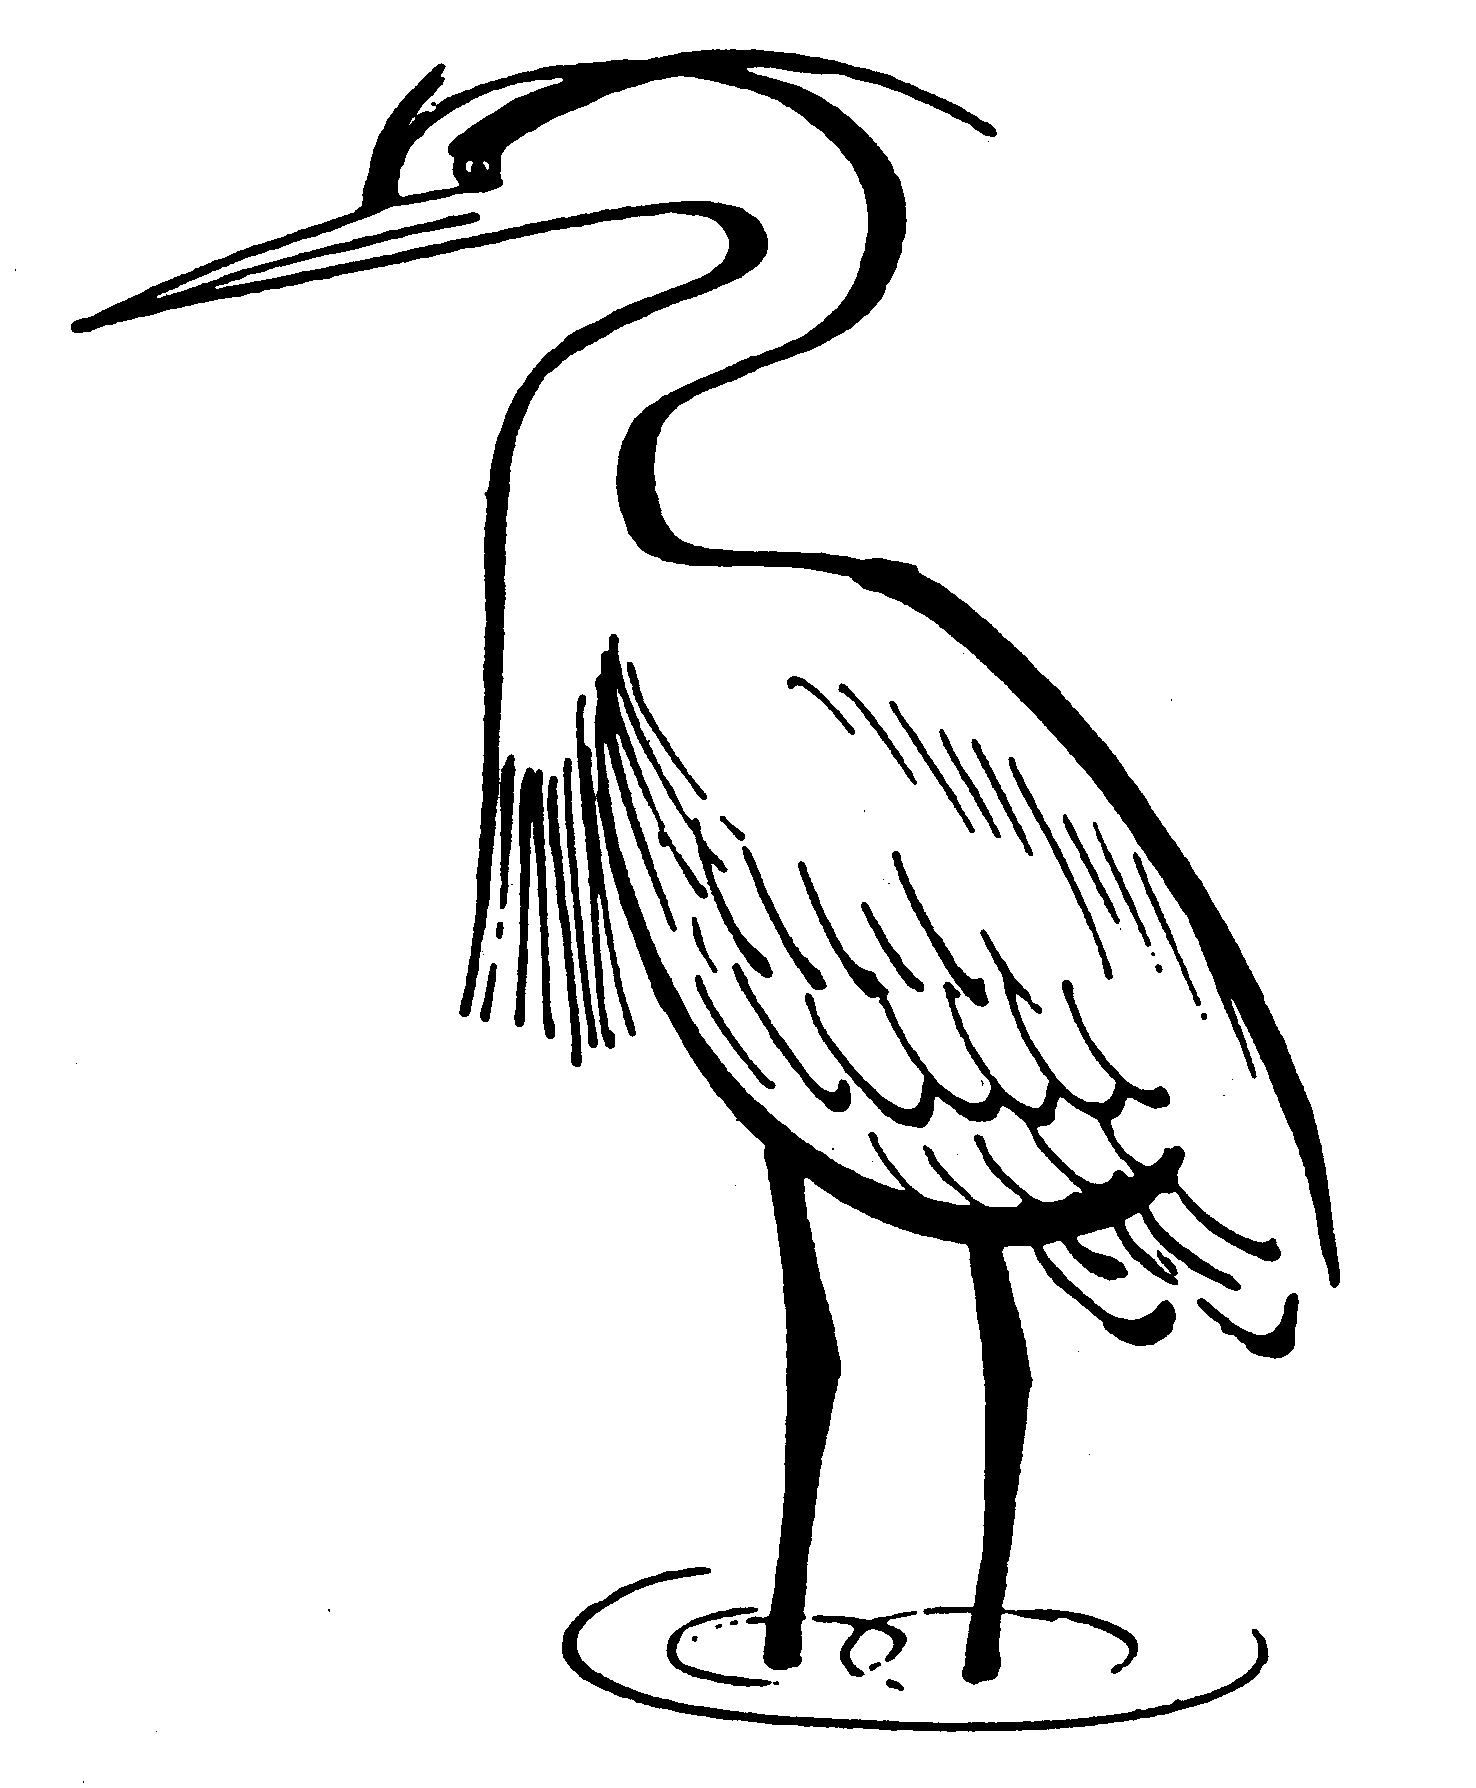 blue heron coloring pages - photo#19